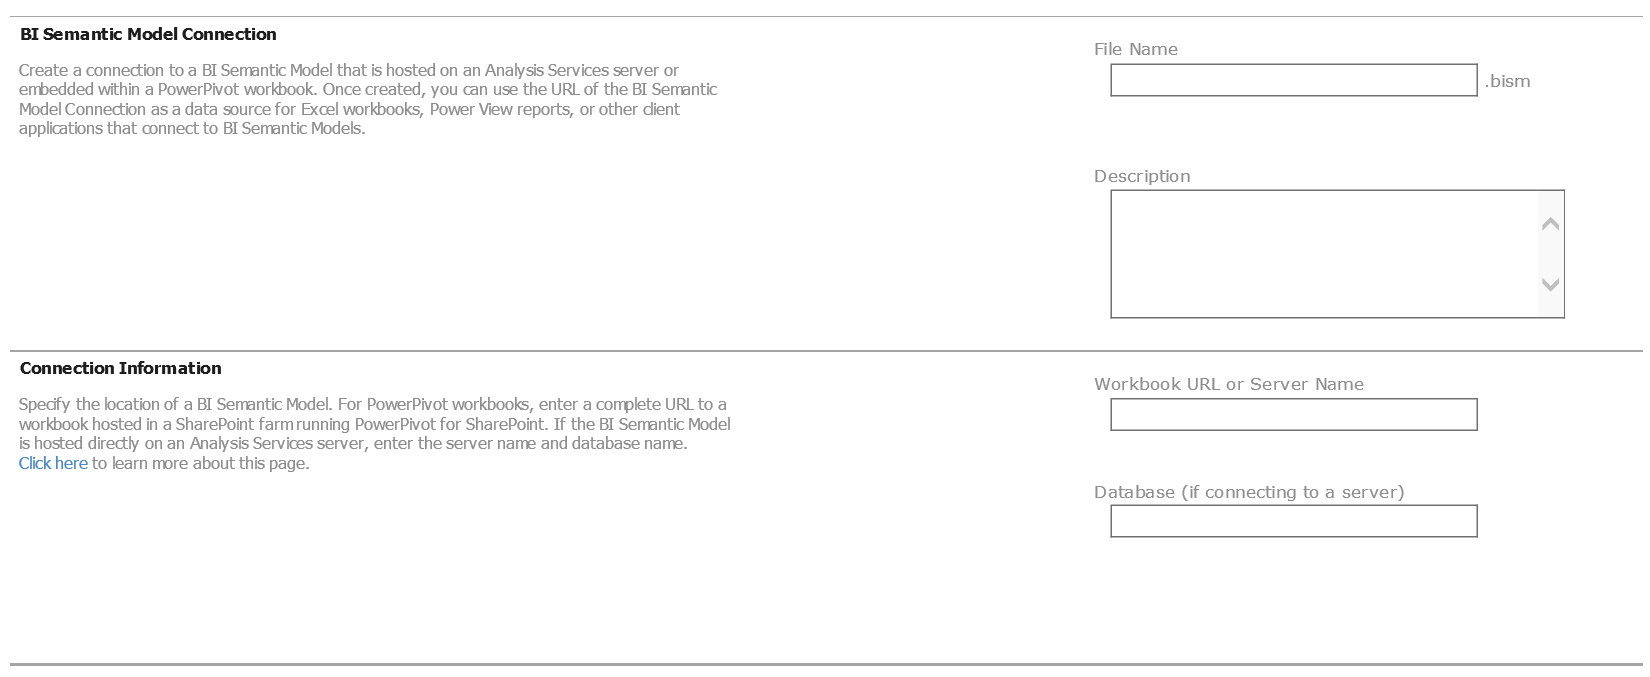 Creating BISM Connection to tabular model cube in SQL 2012